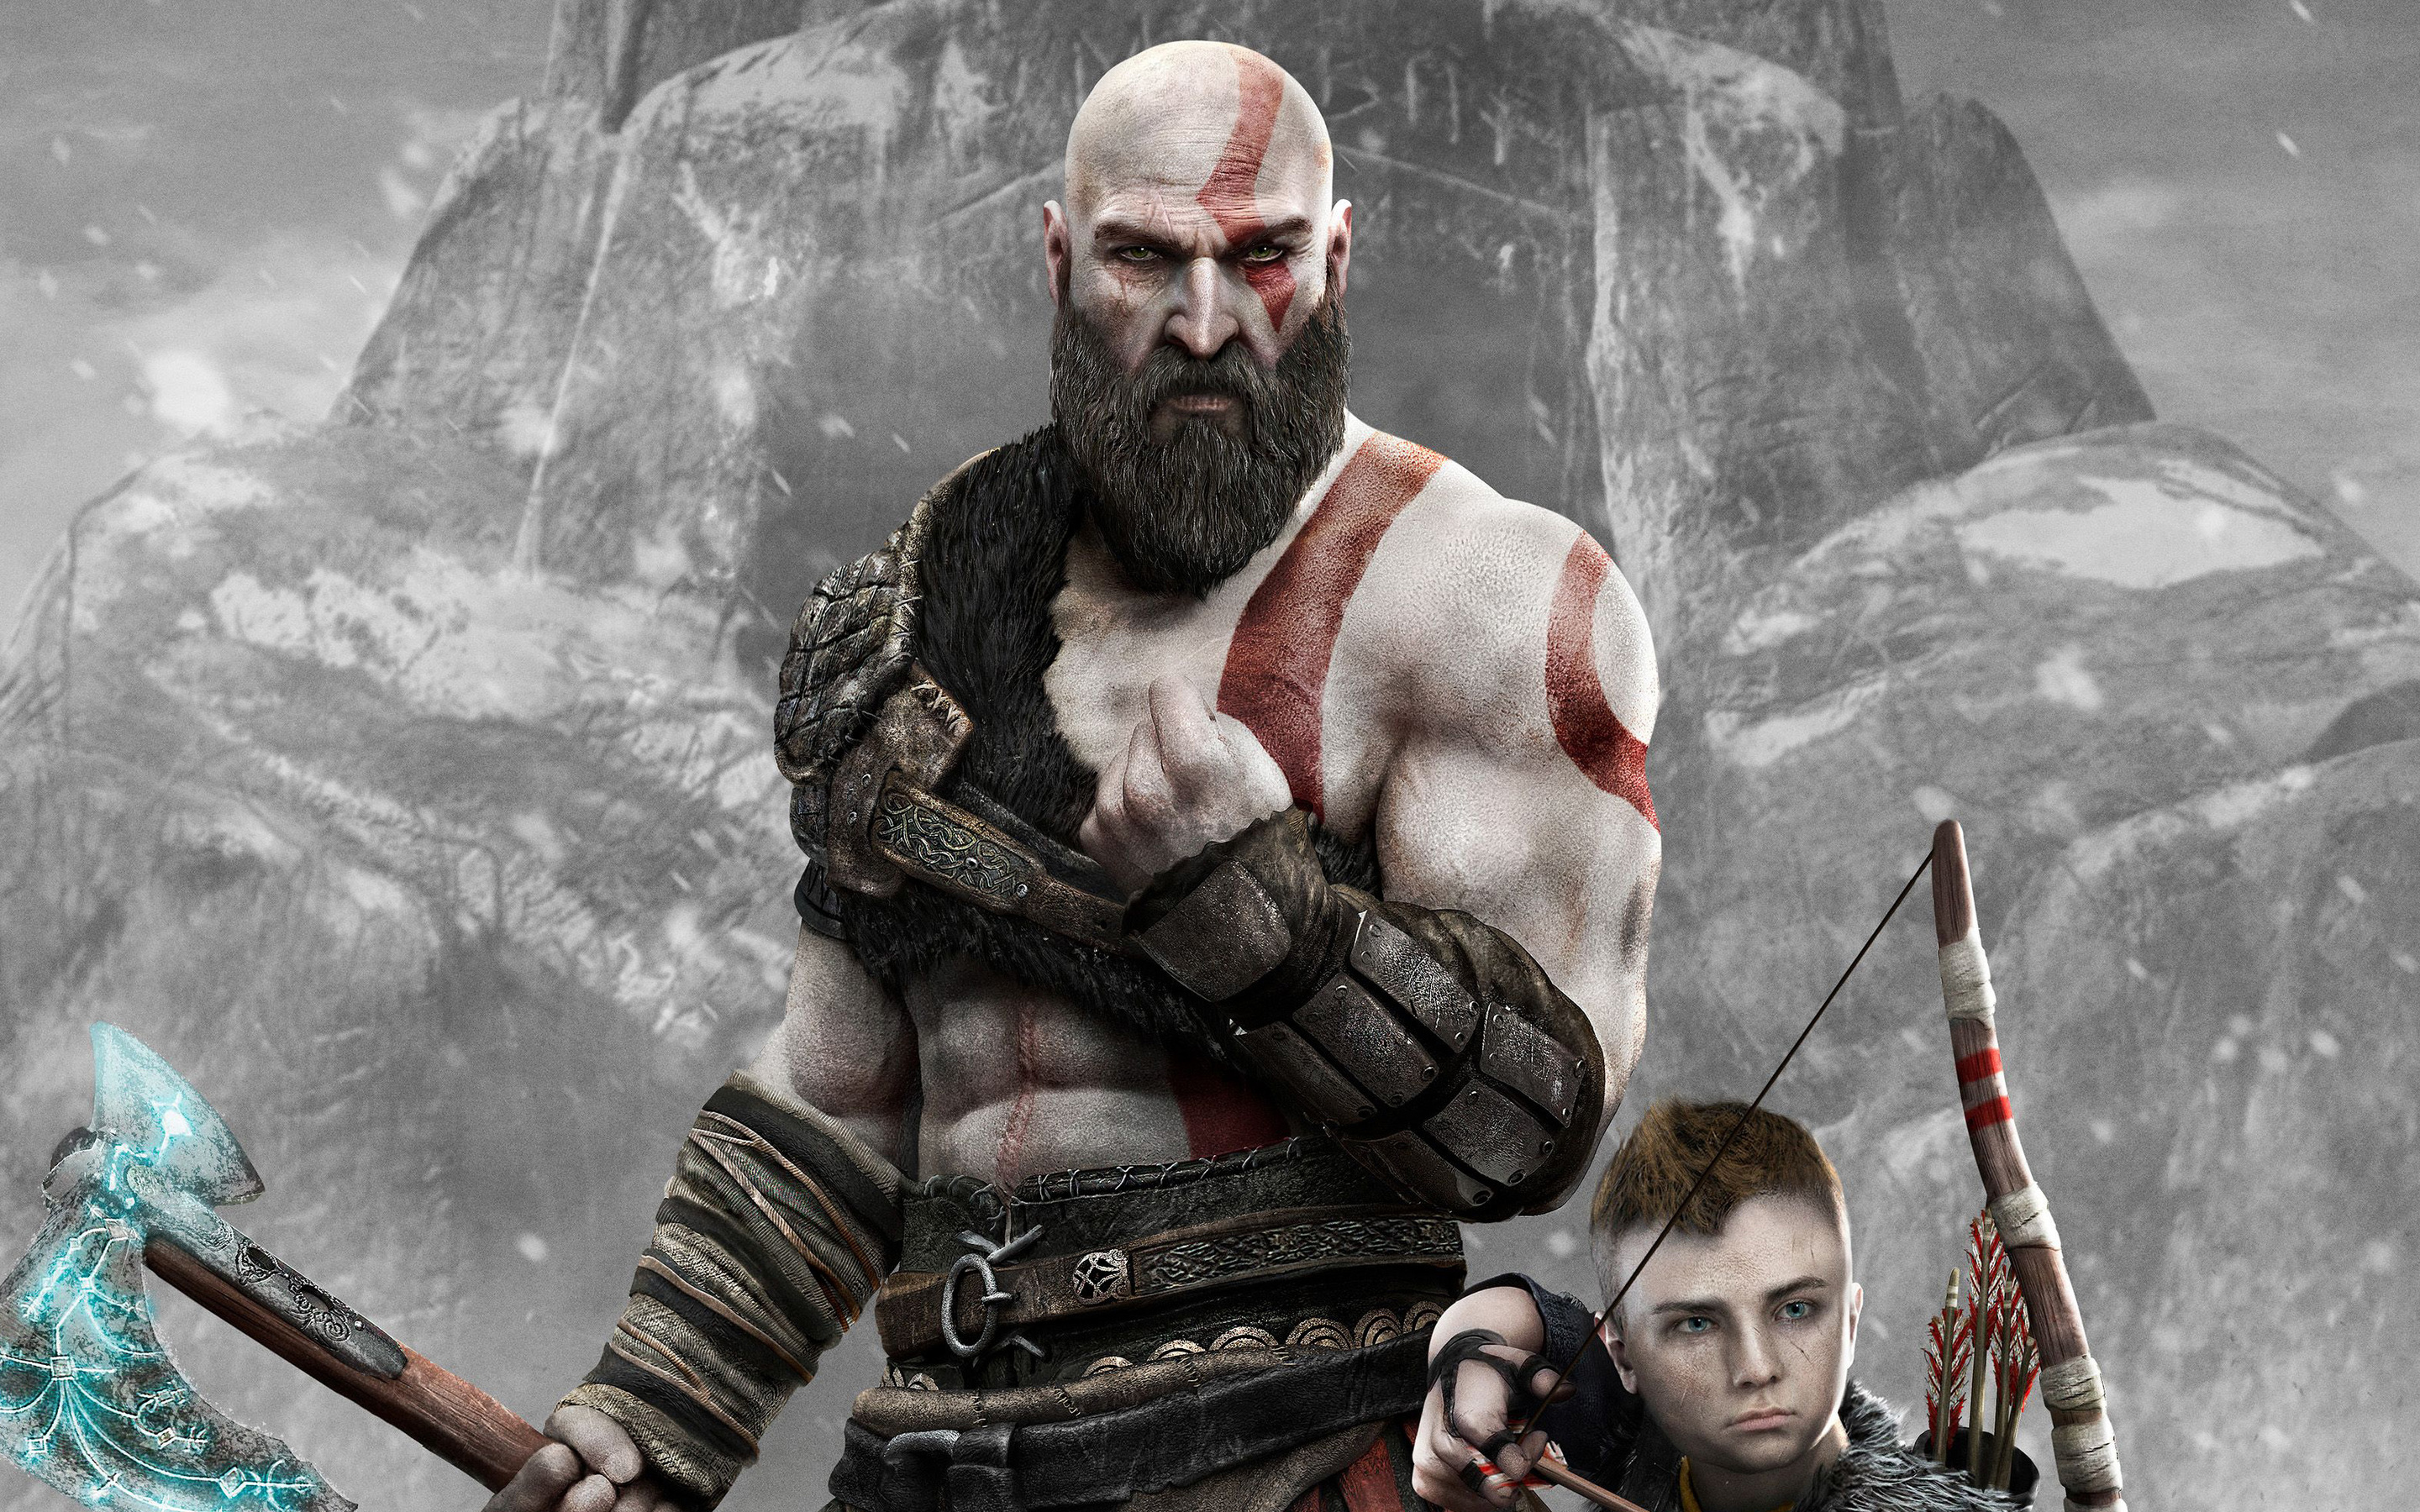 2880x1800 kratos and atreus god of war 4 4k 2018 macbook pro retina